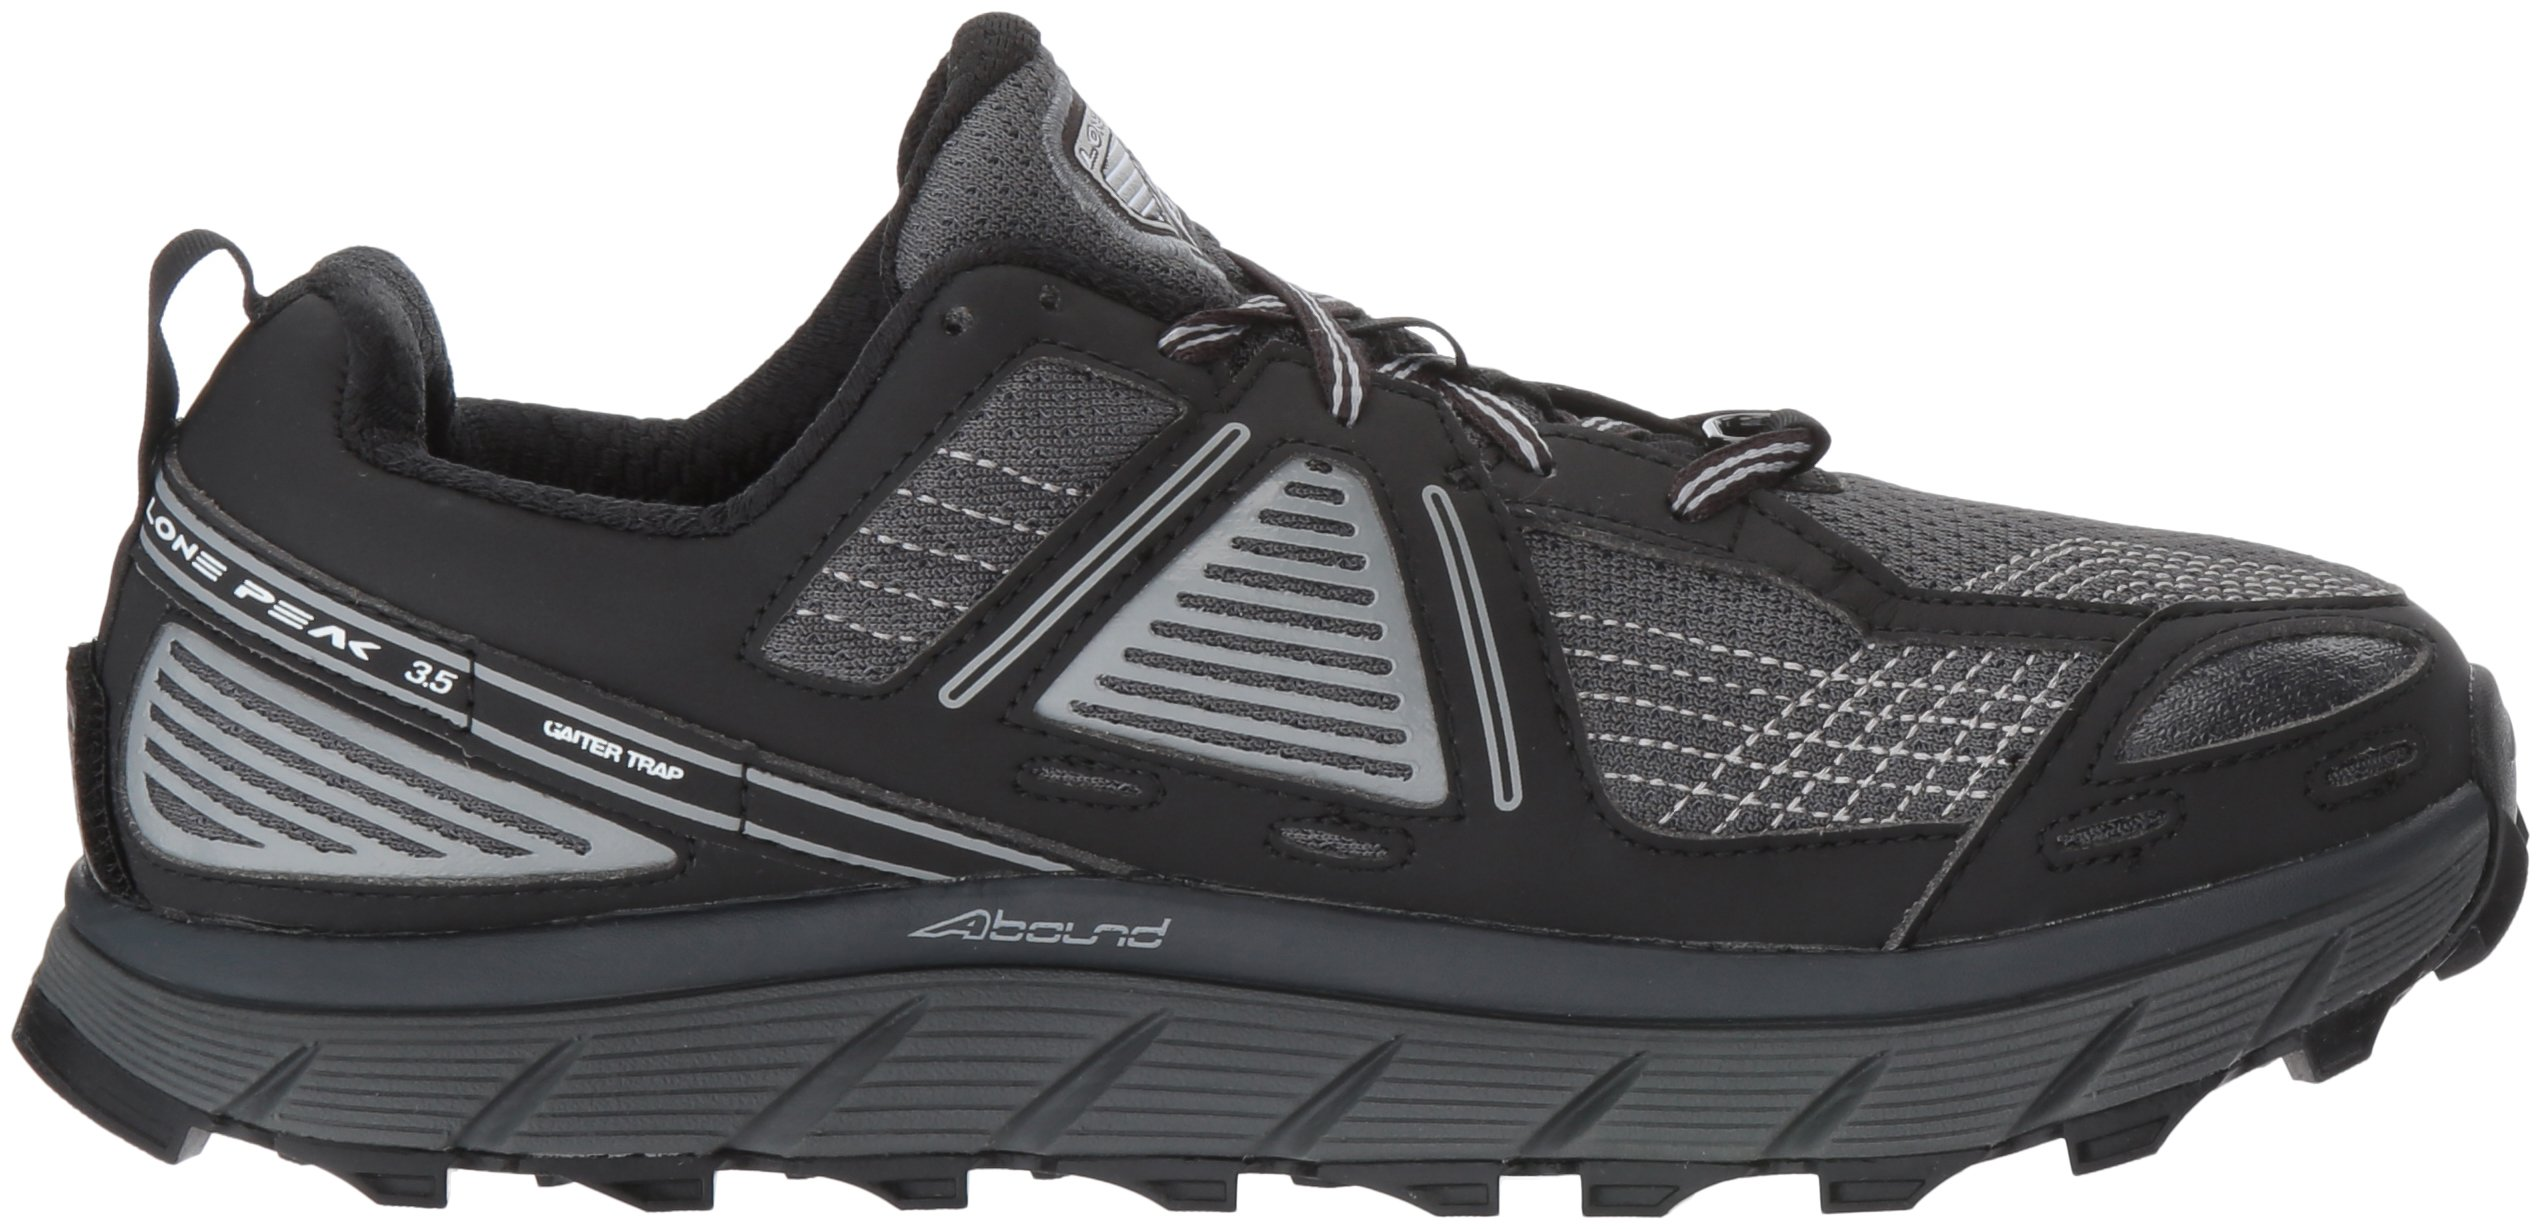 Altra Women's Lone Peak 3.5 Running Shoe, Black, 8.5 B US by Altra (Image #7)